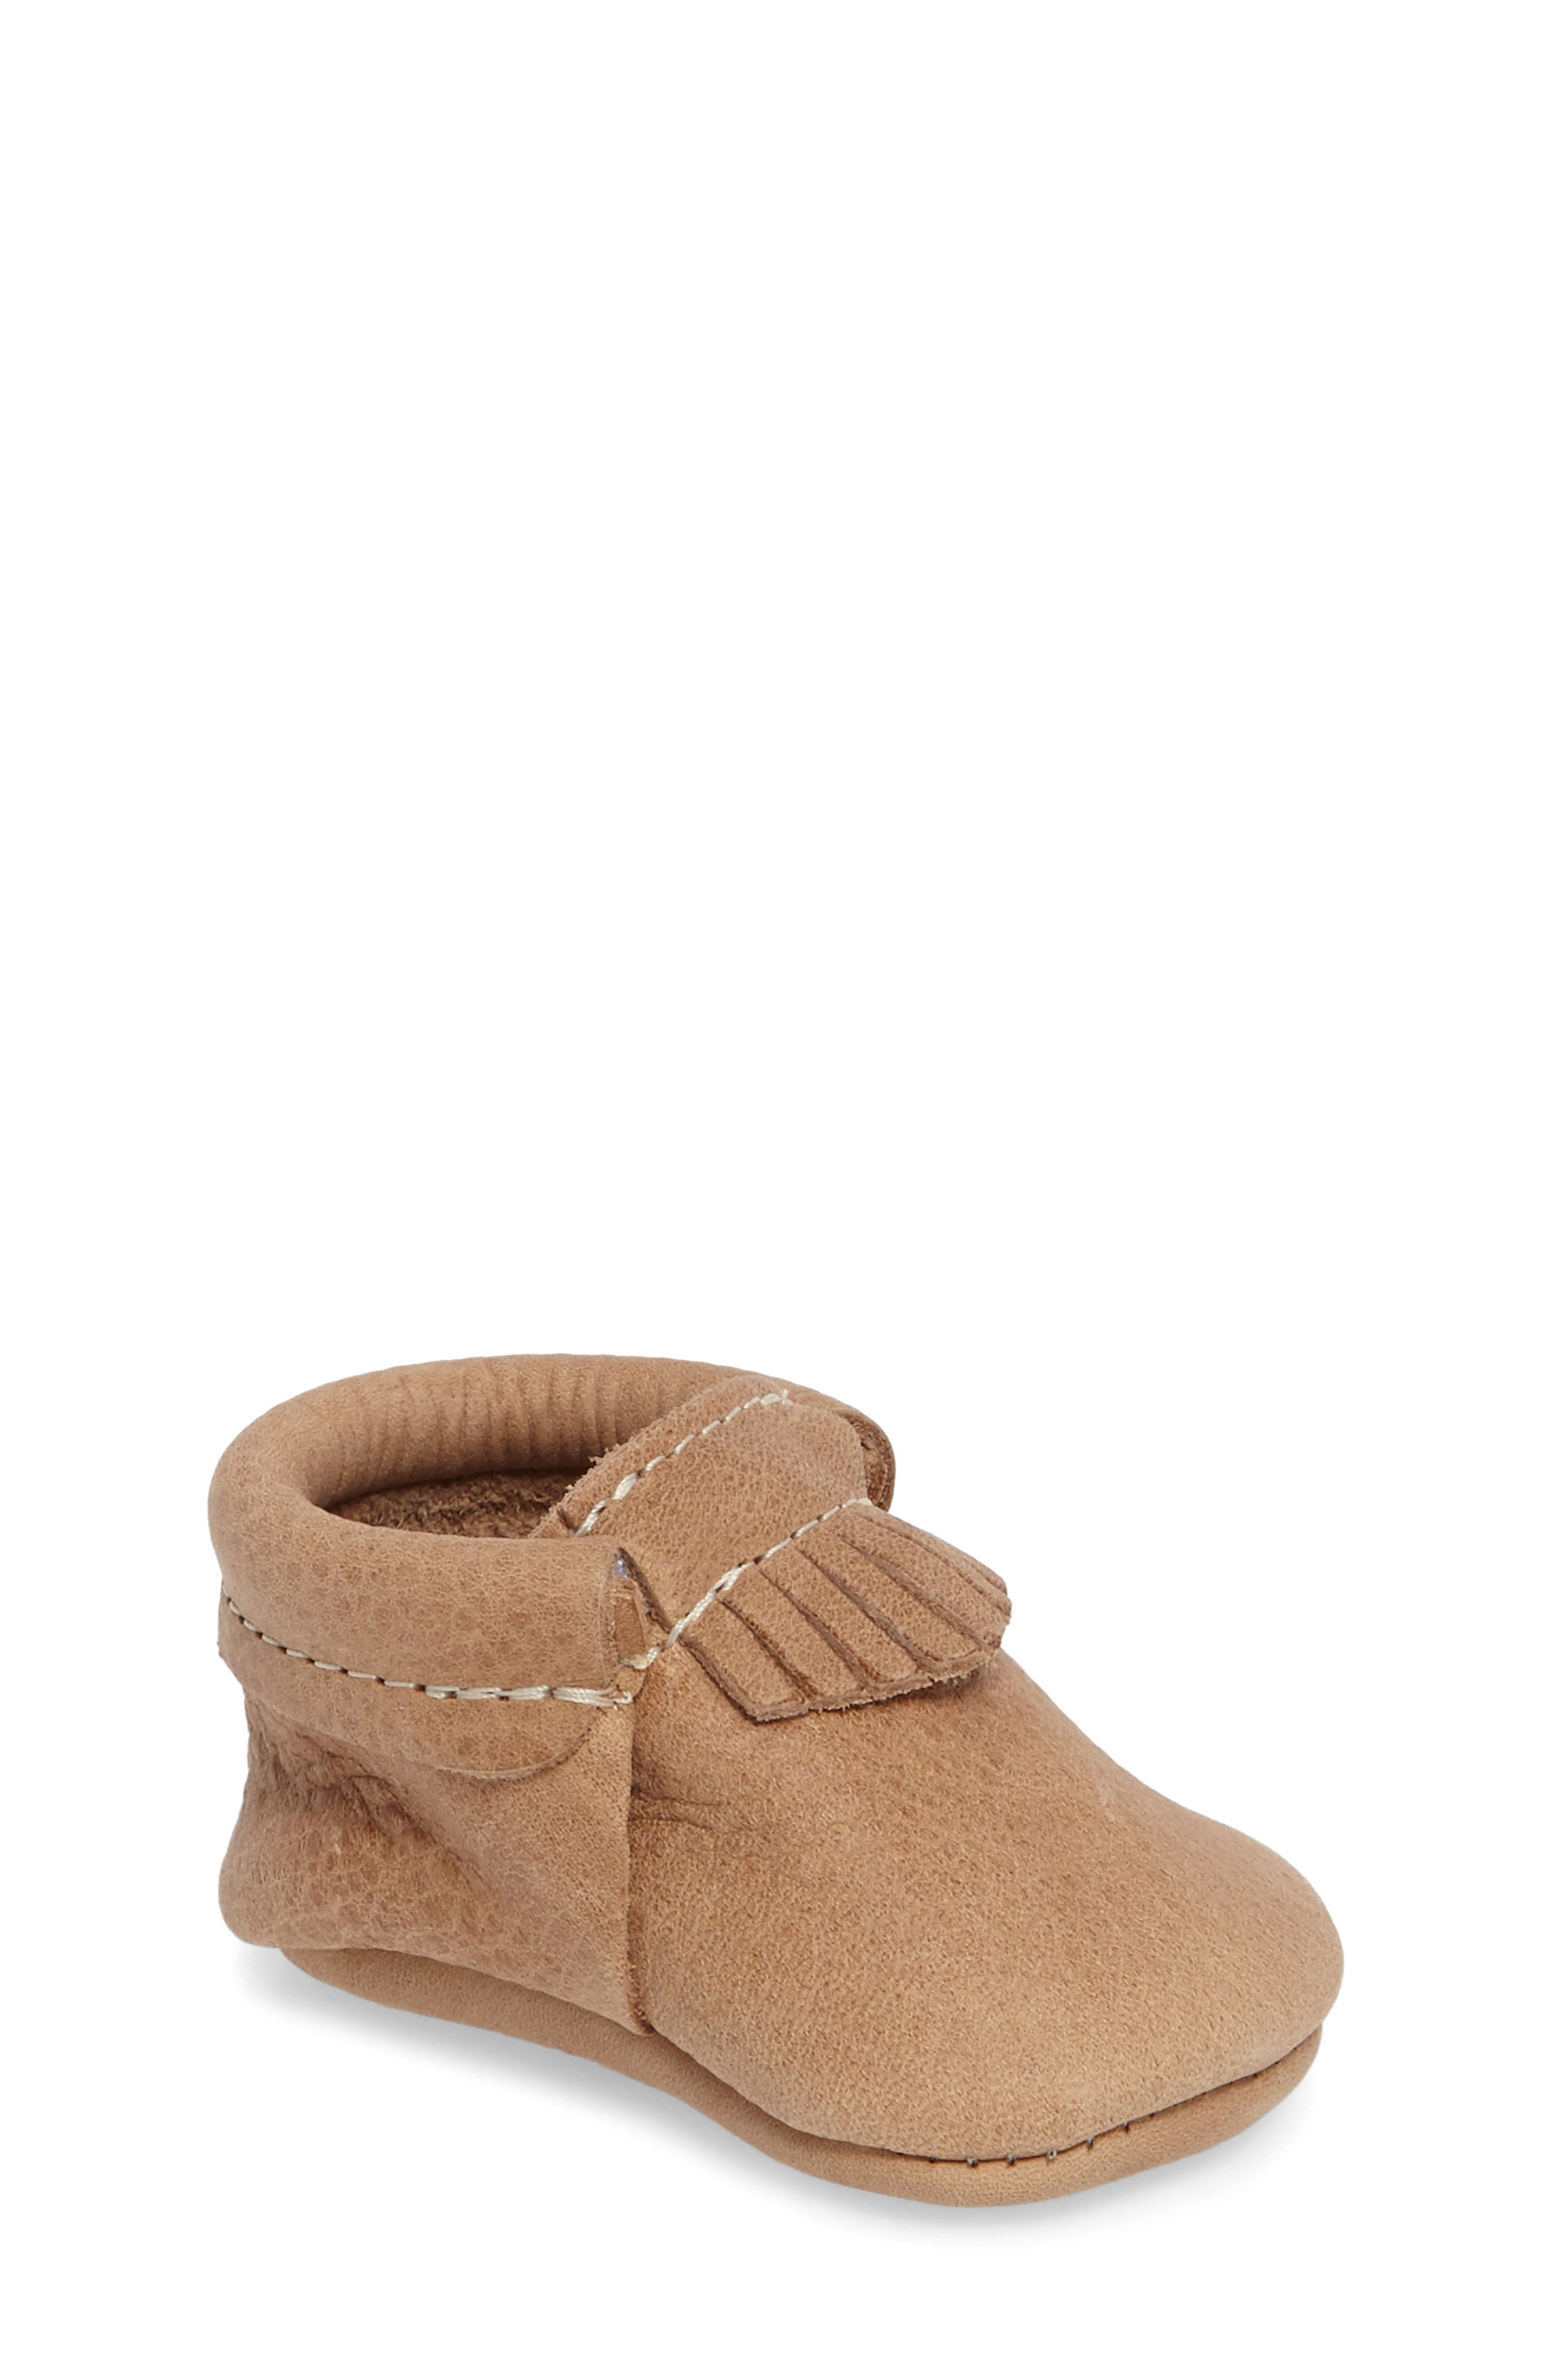 City Moccasin,                         Main,                         color, Weathered Brown